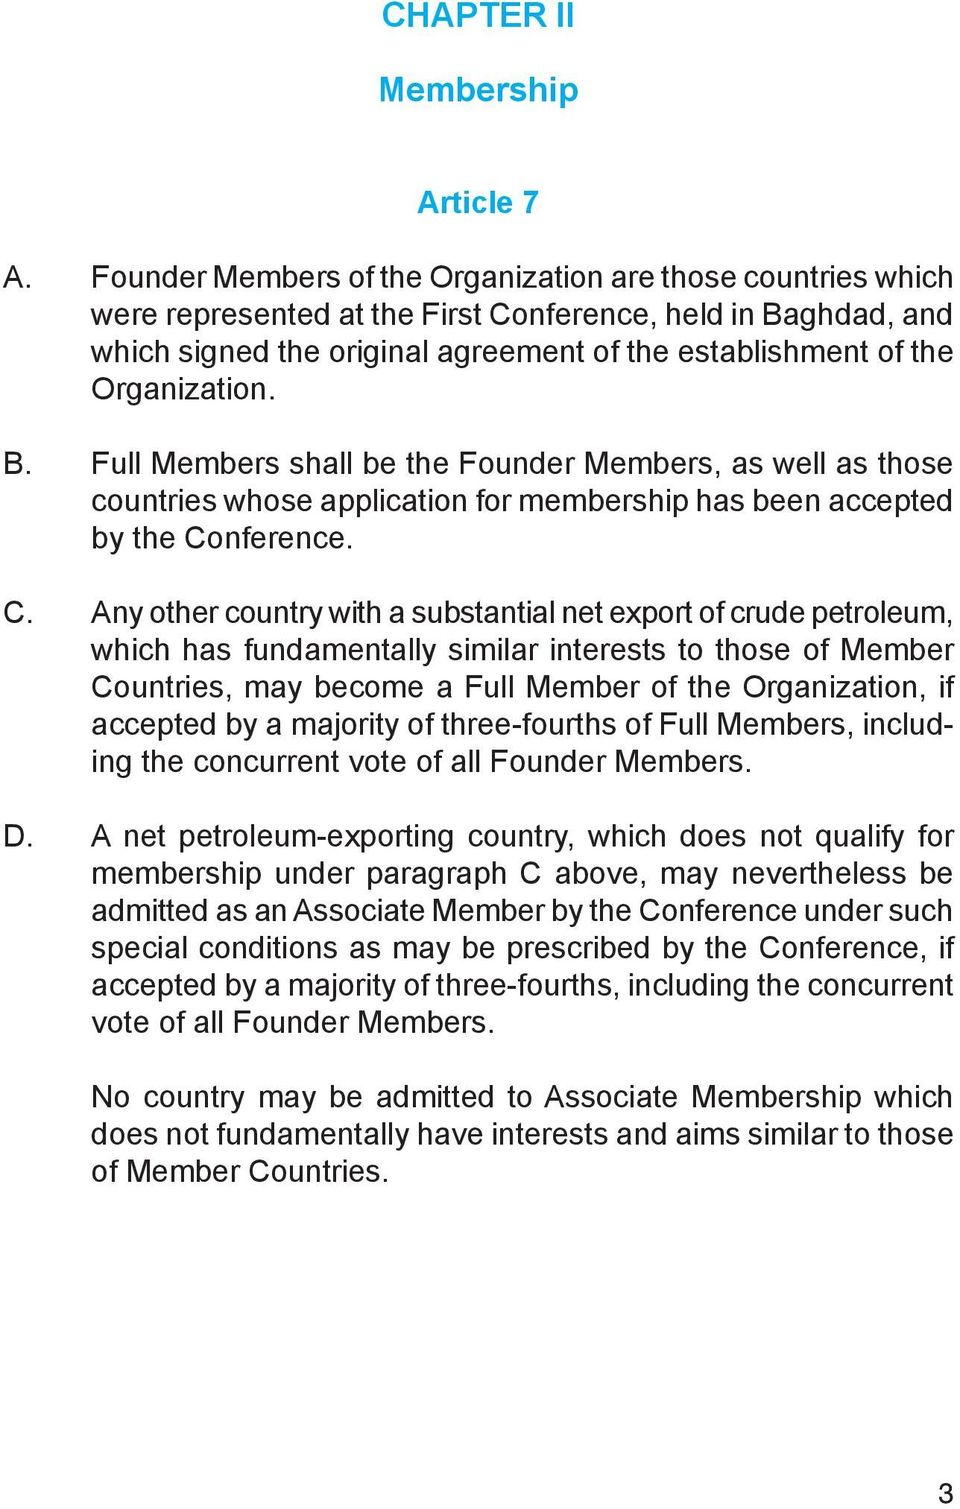 Organization. B. Full Members shall be the Founder Members, as well as those countries whose application for membership has been accepted by the Co